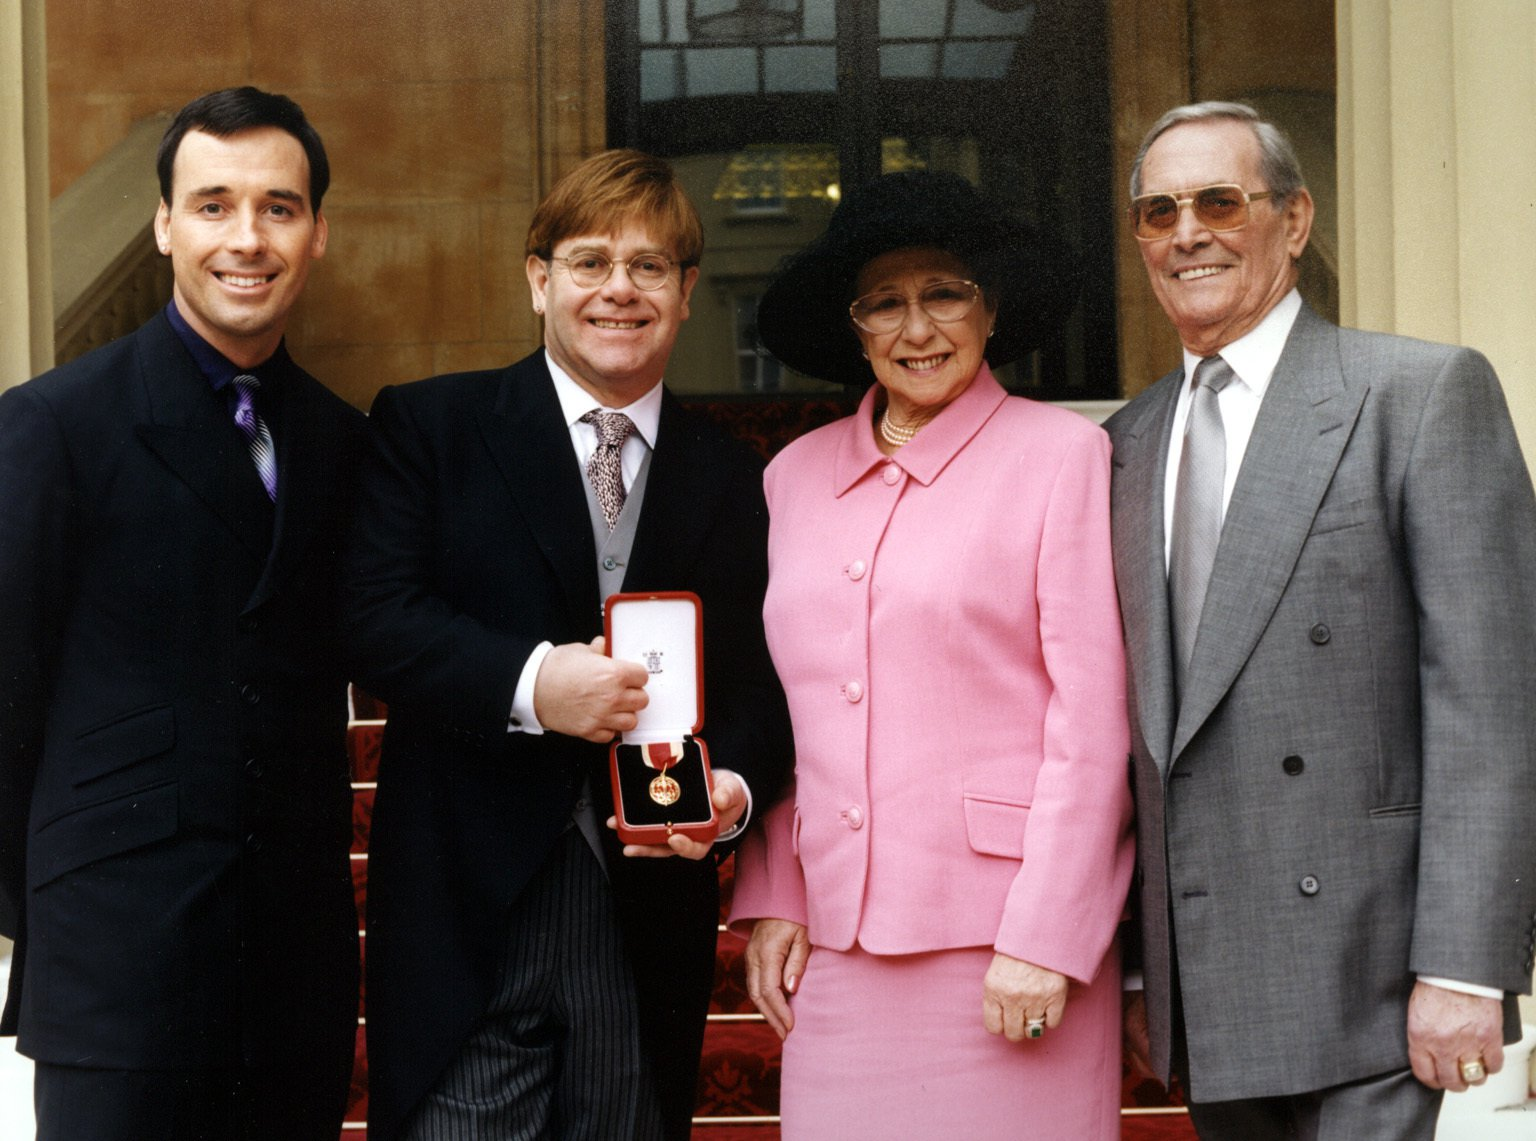 Why Elton John and his mum Sheila Farebrother had an 8-year feud and how they patched things up